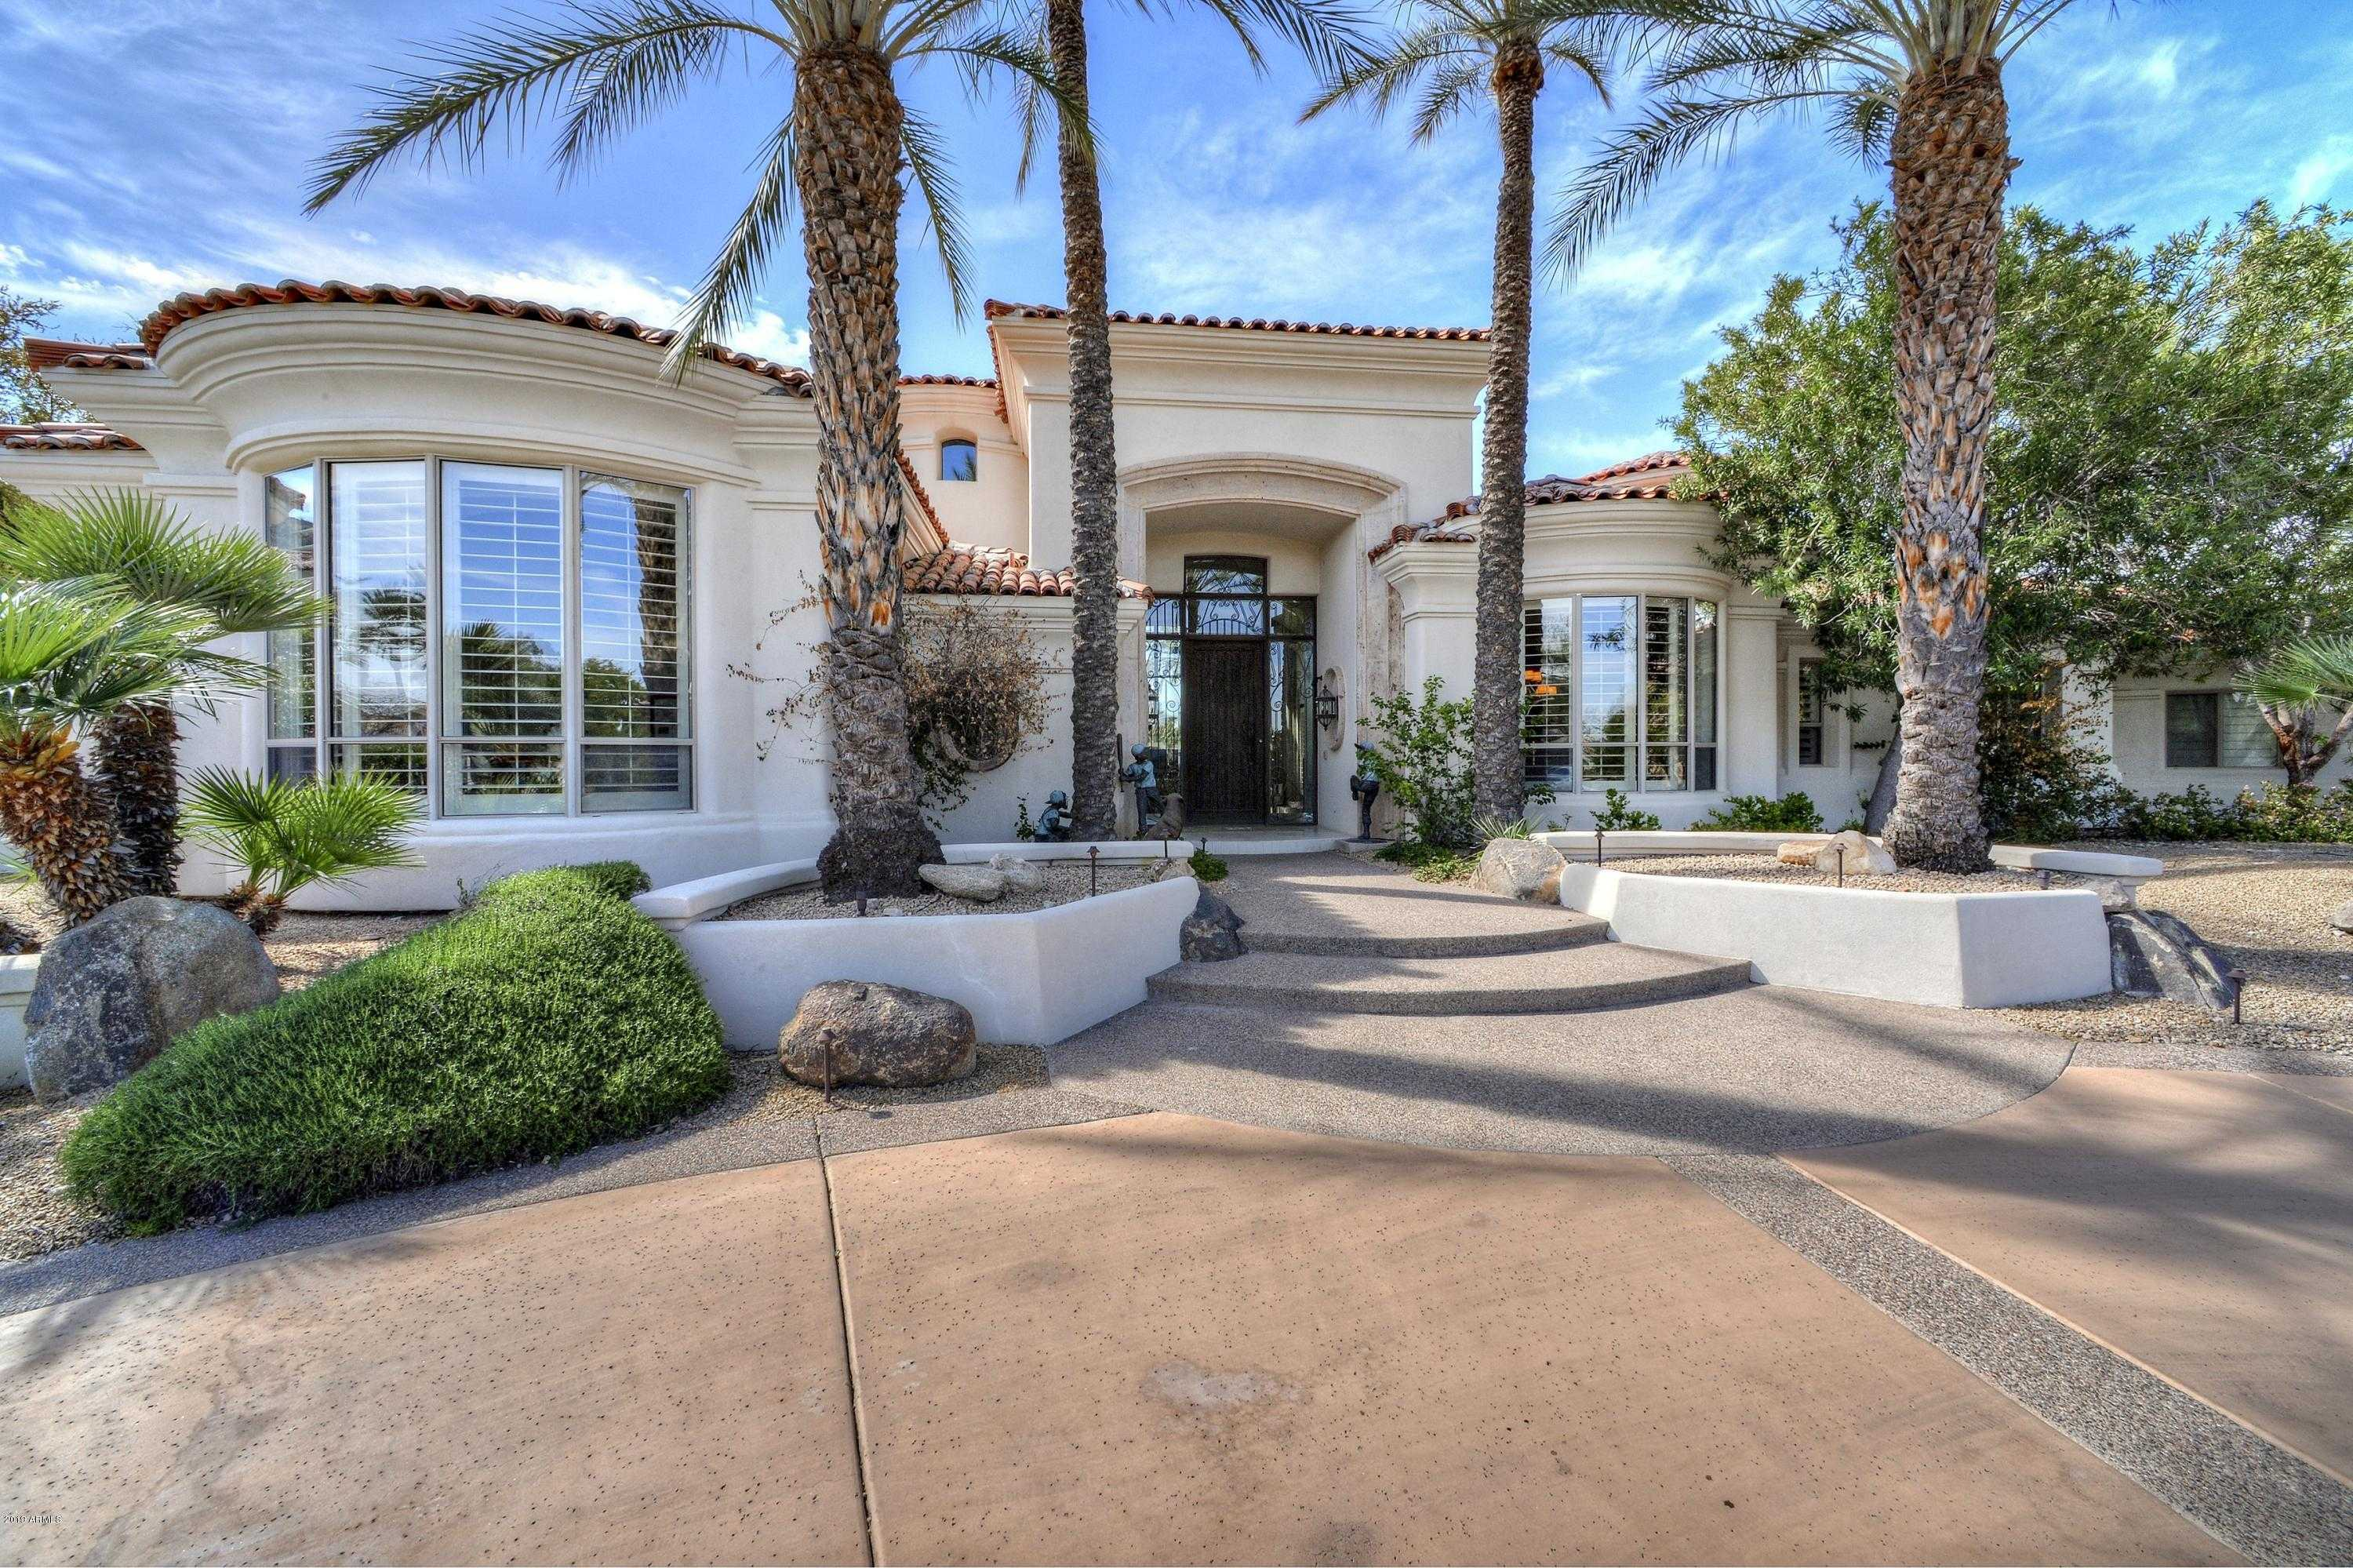 $2,900,000 - 5Br/7Ba - Home for Sale in Canyon Horizons, Paradise Valley